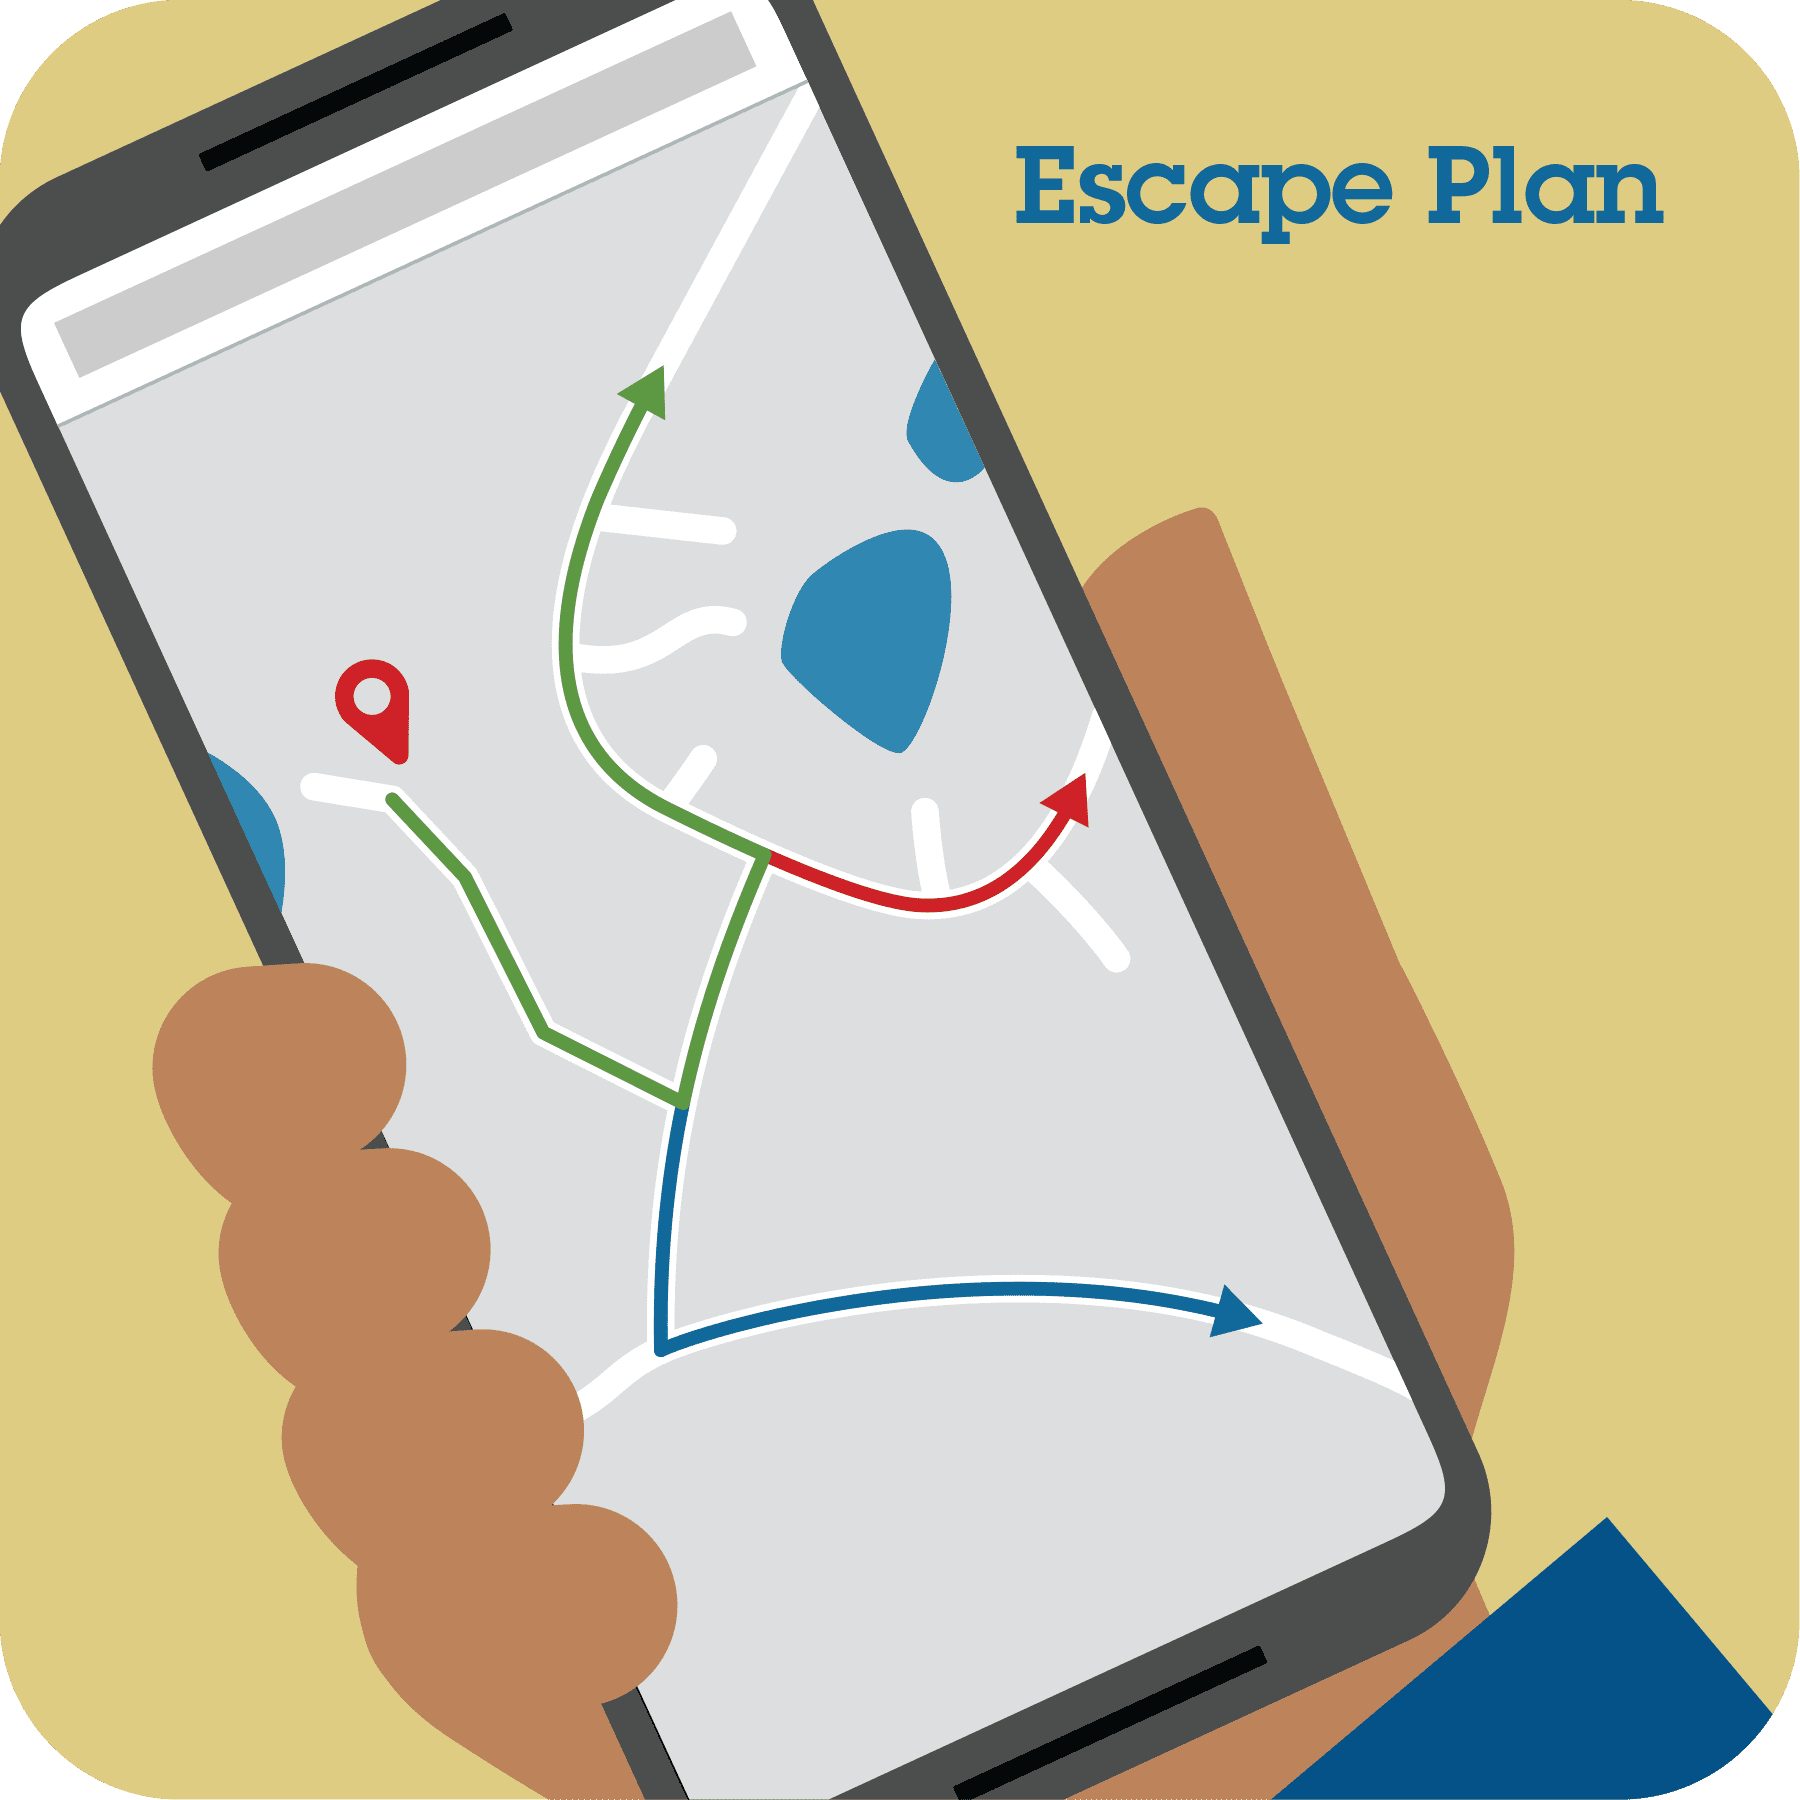 A mobile phone showing a map with an escape route.